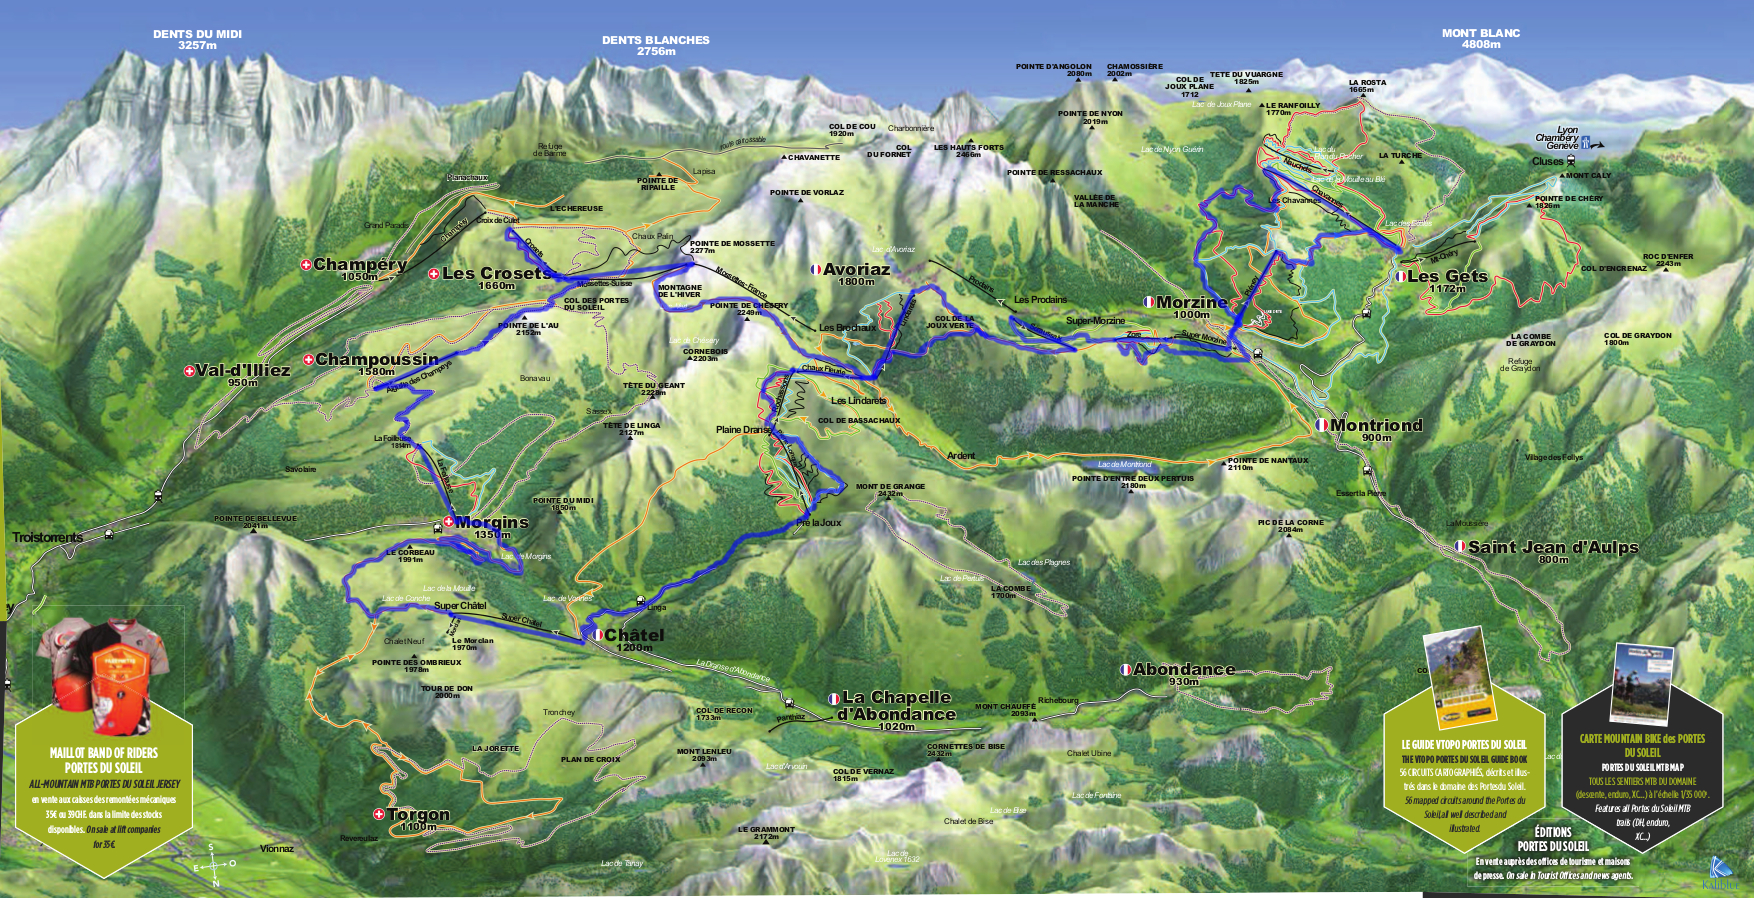 Our tour of the Portes du Soleil marked in blue.